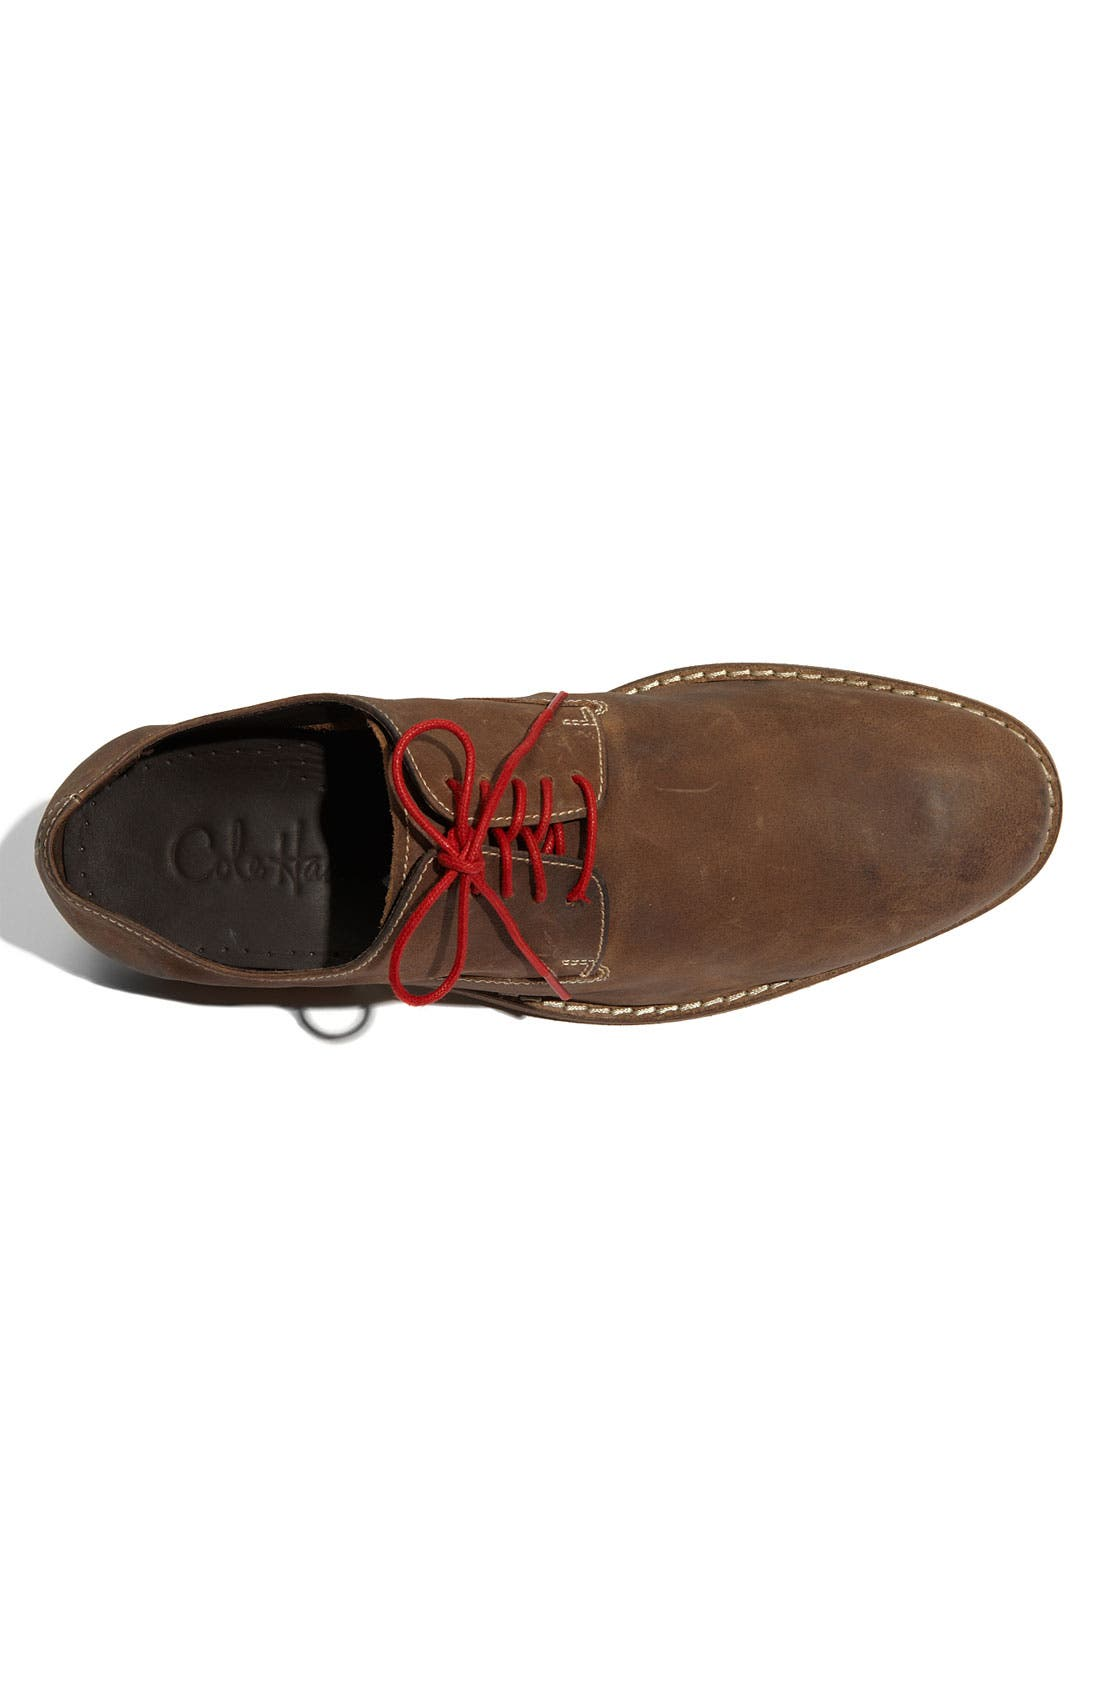 Alternate Image 3  - Cole Haan 'Air Colton' Casual Oxford   (Men)